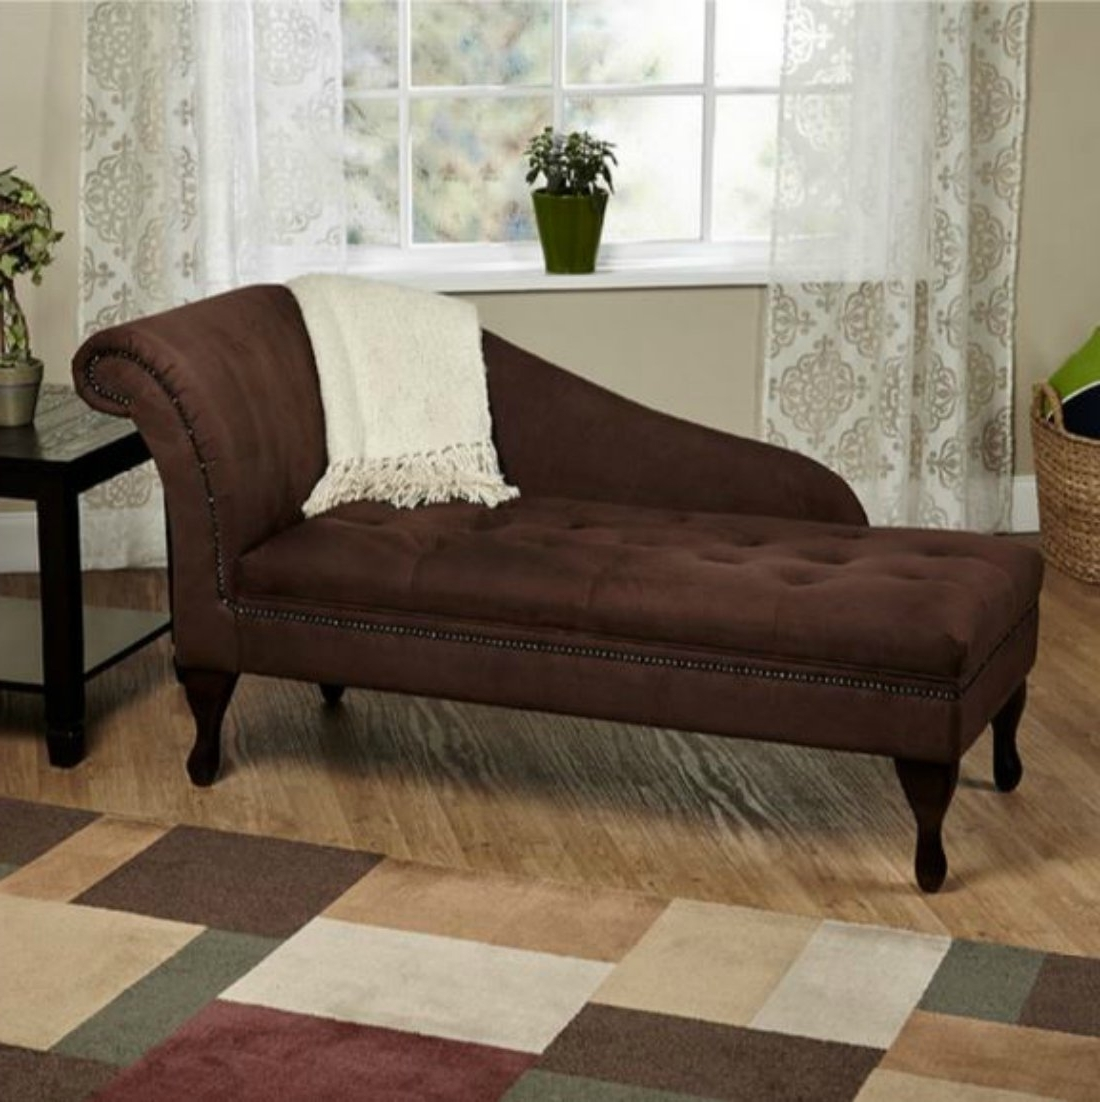 Popular Amazon: Modern Storage Chaise Lounge Chair – This Tufted Inside Tufted Chaise Lounge Chairs (View 9 of 15)